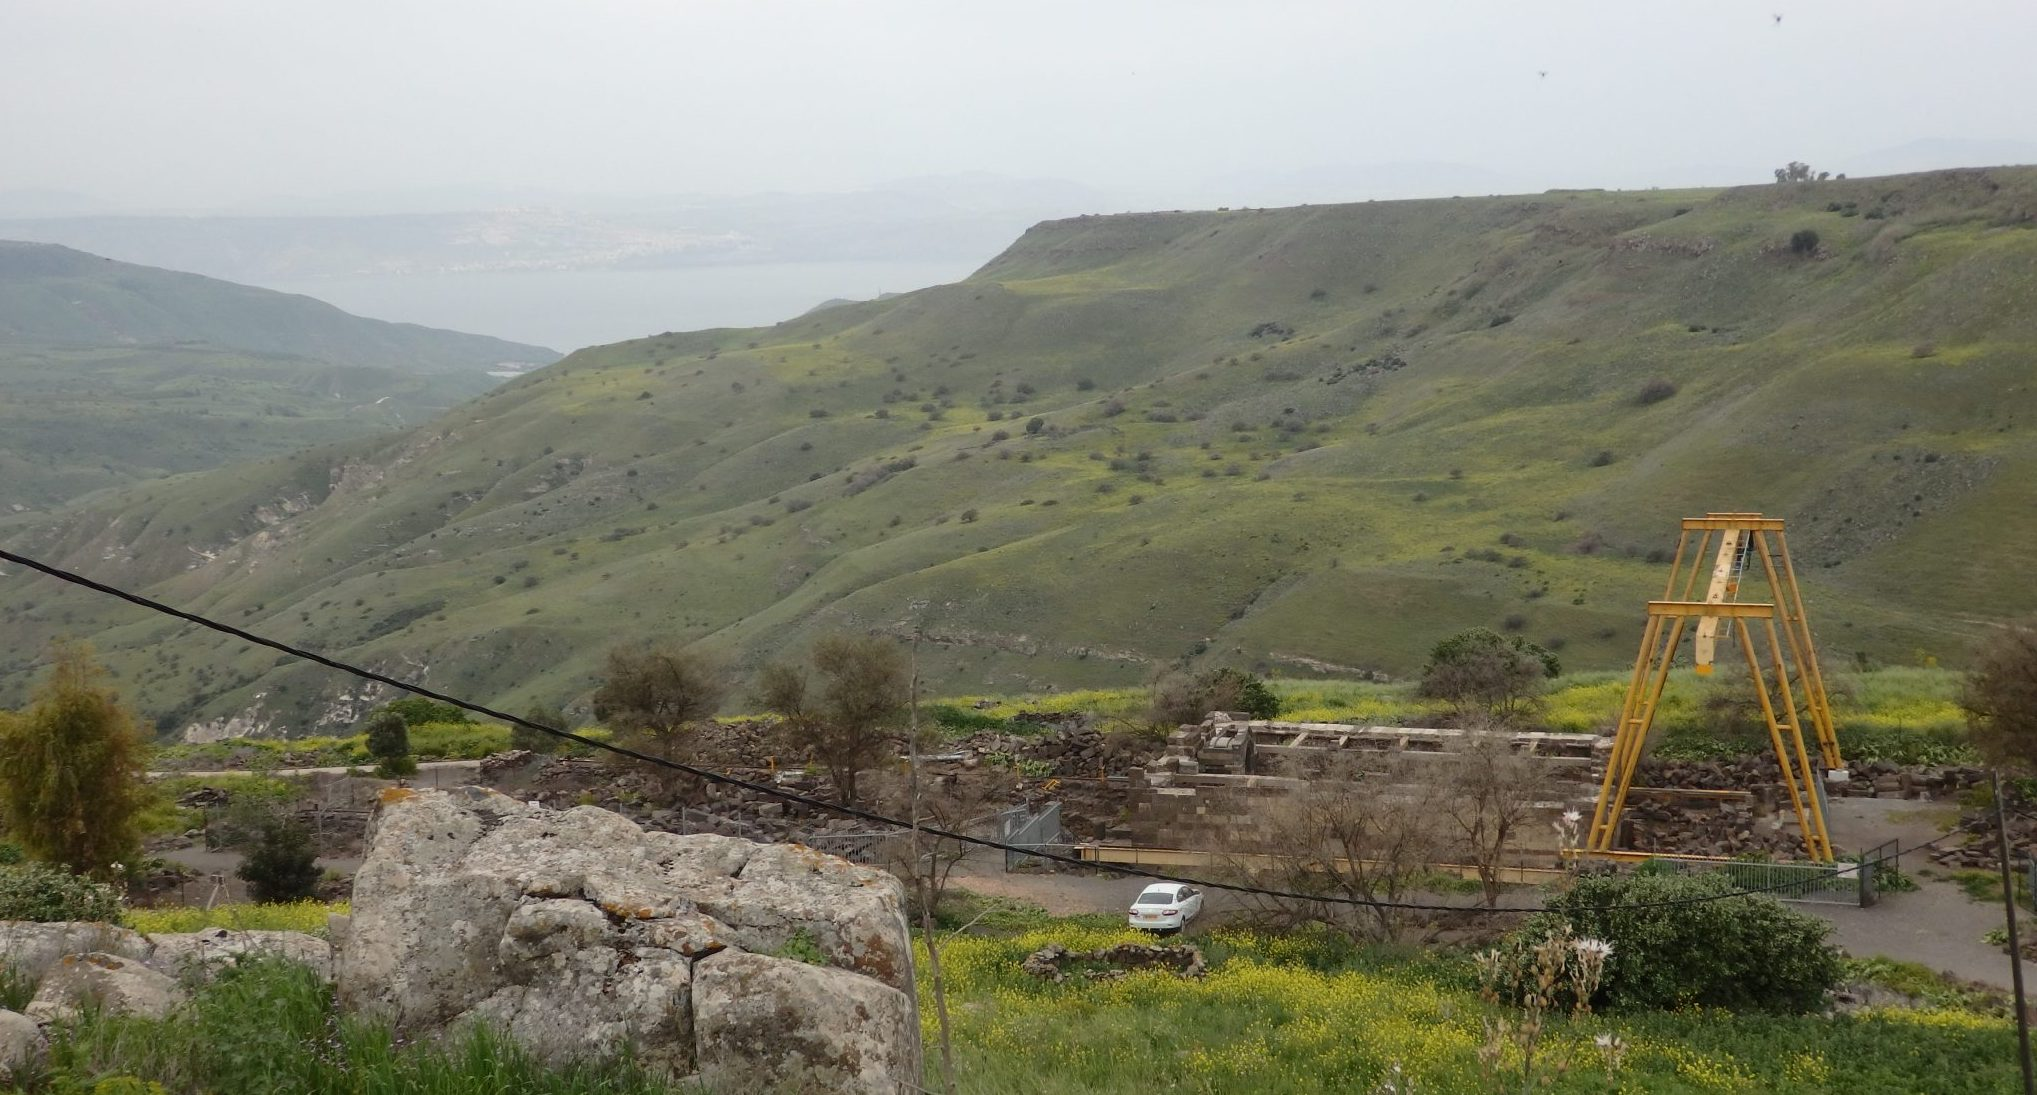 his is the view over the hills of the Golan Heights that opened up once I had descended a short distance down the path from the parking lot. You can see the Sea of Galilee in the haze in the distance. In the foreground is the ruin of the Um el Kanatir synagogue.